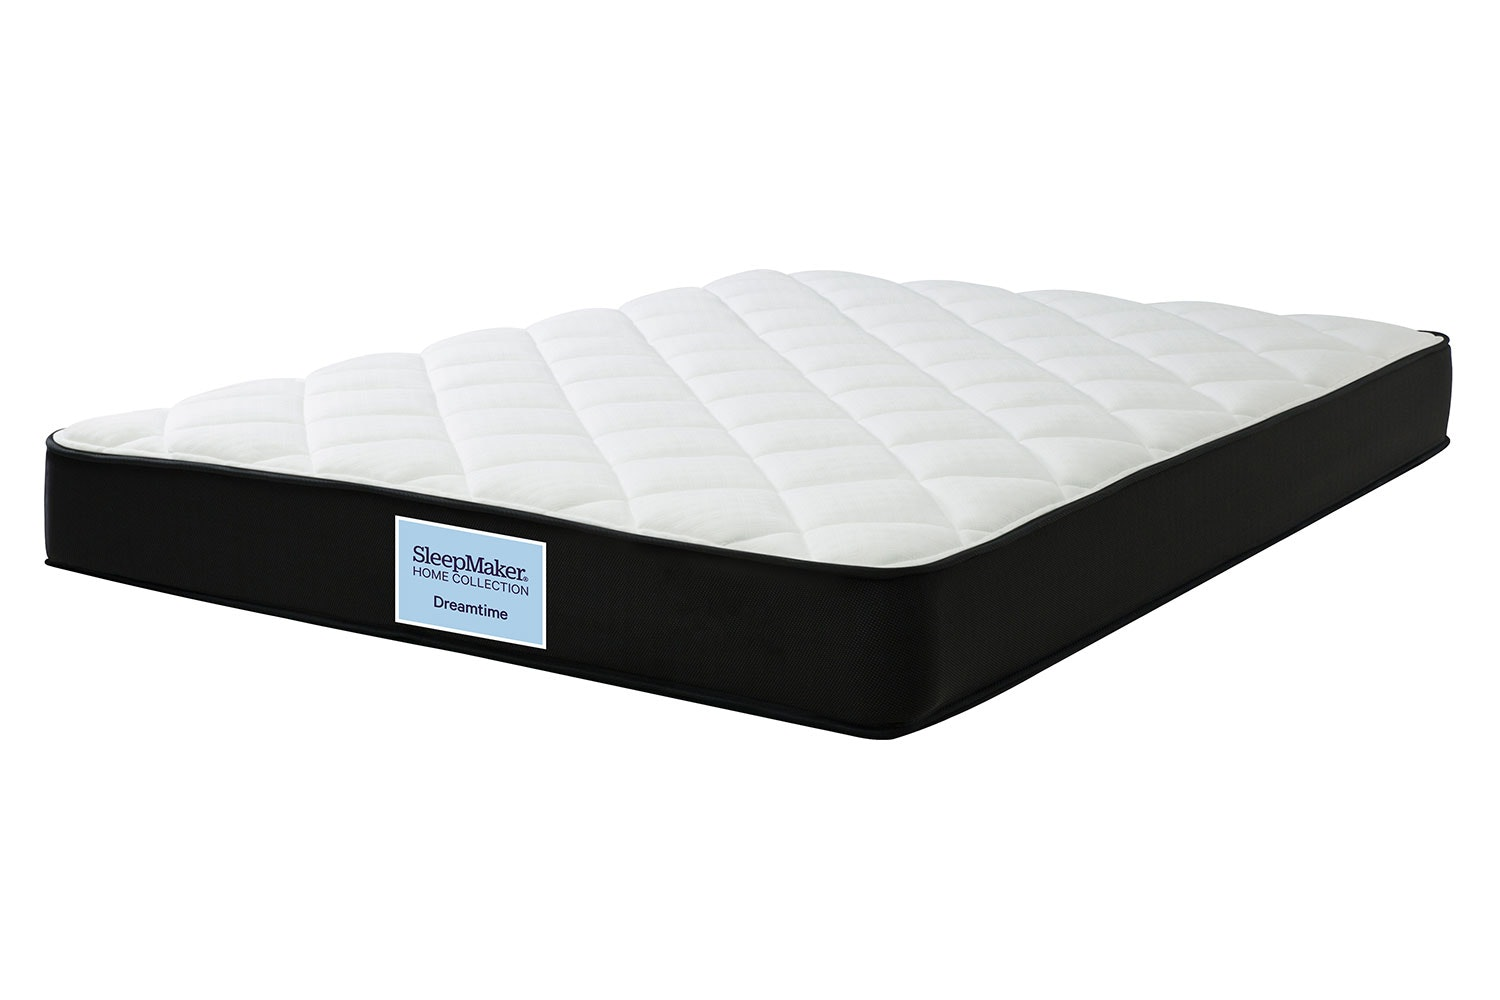 Dreamtime Queen Mattress by Sleepmaker